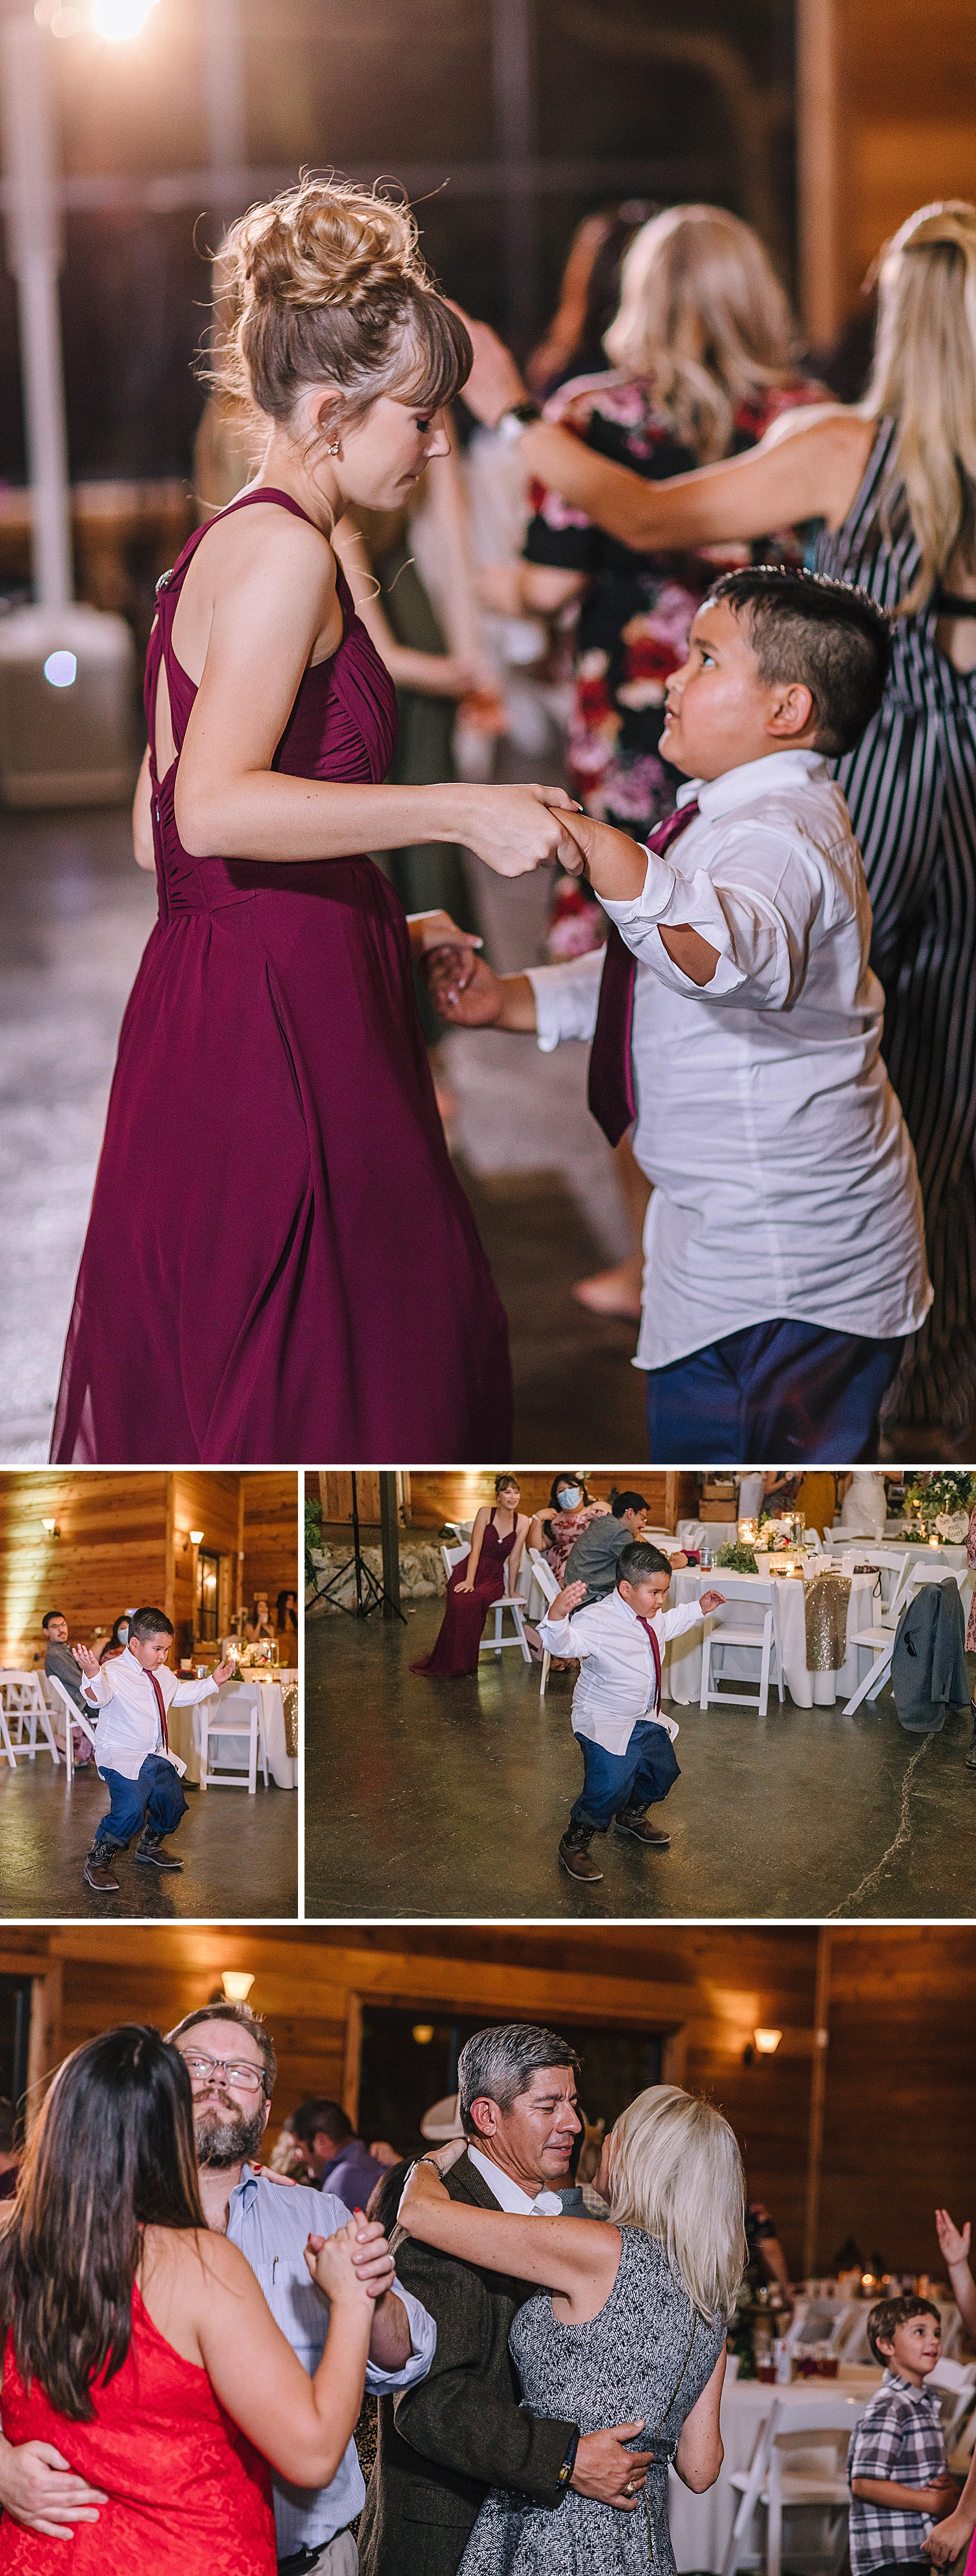 Geronimo-Oaks-Wedding-Venue-Seguin-Texas-Elegant-Navy-Burgundy-Wedding-Carly-Barton-Photography_0096.jpg